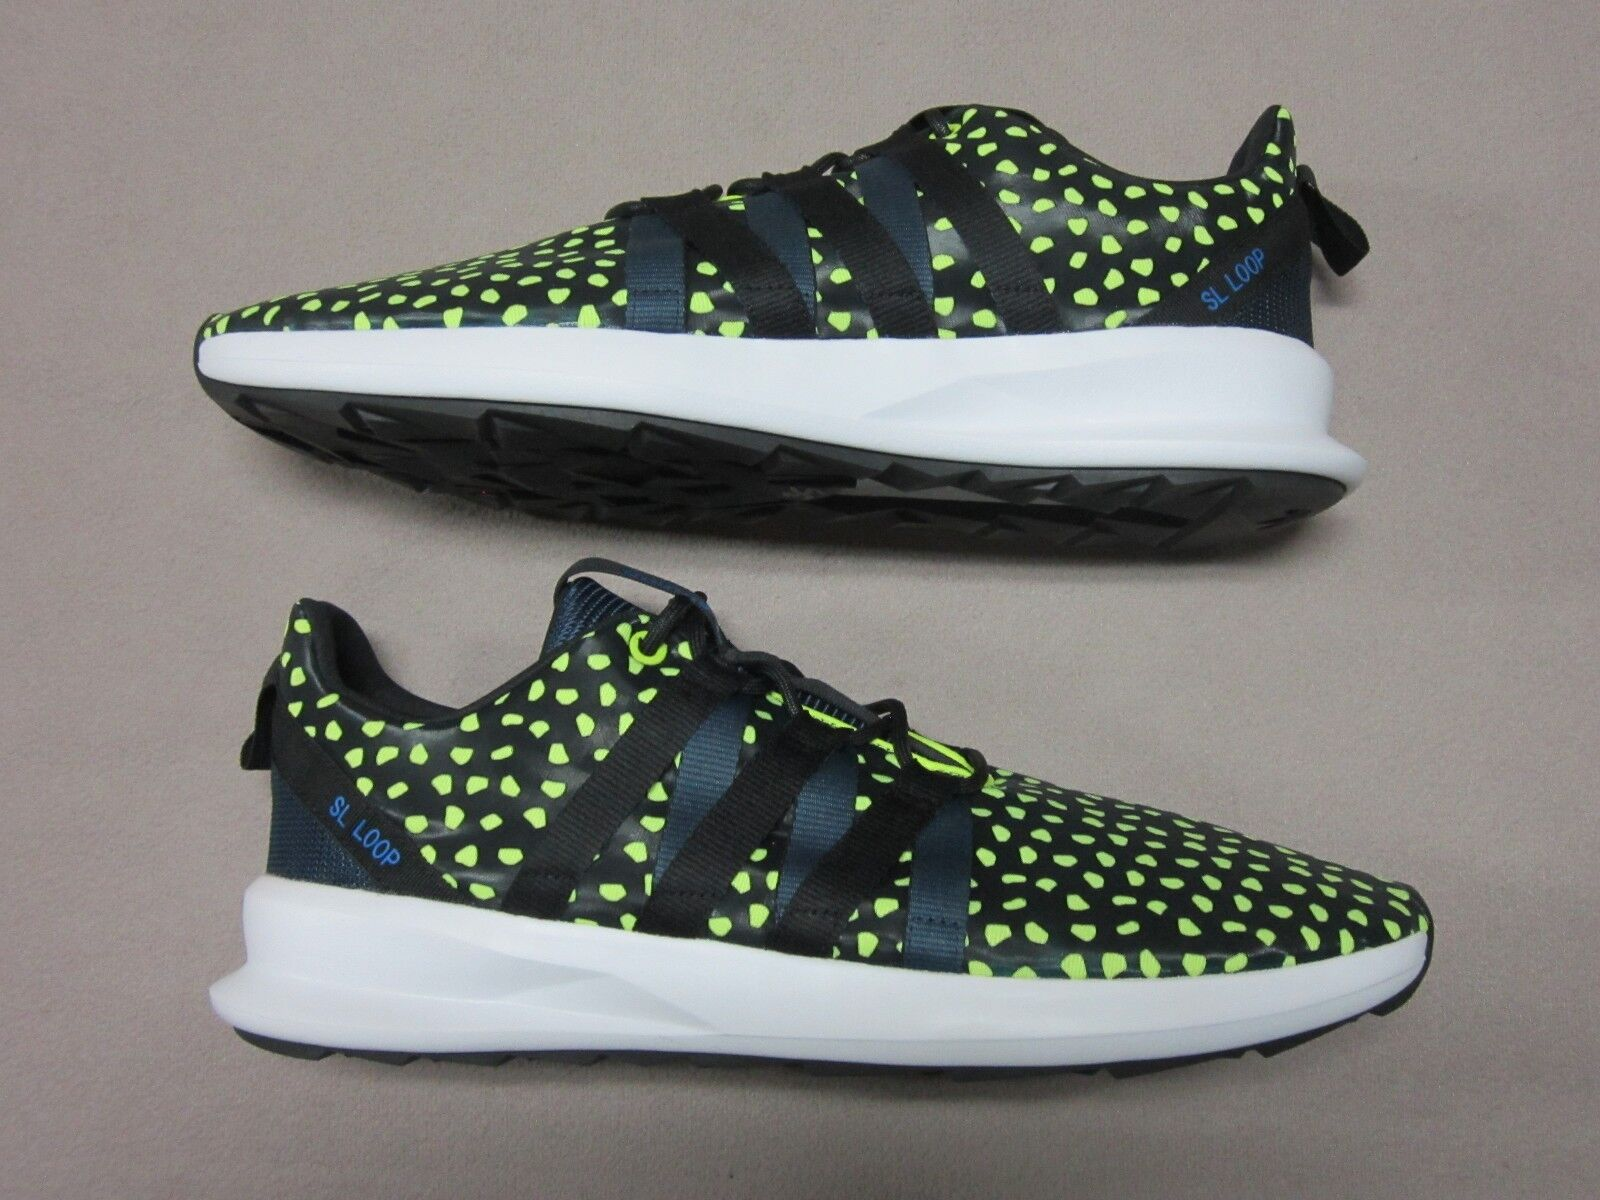 ADIDAS SL LOOP CHROMATCH BLACK & NEON YELLOW LACE UP SNEAKER SHOES SIZE 13 NEW Seasonal clearance sale